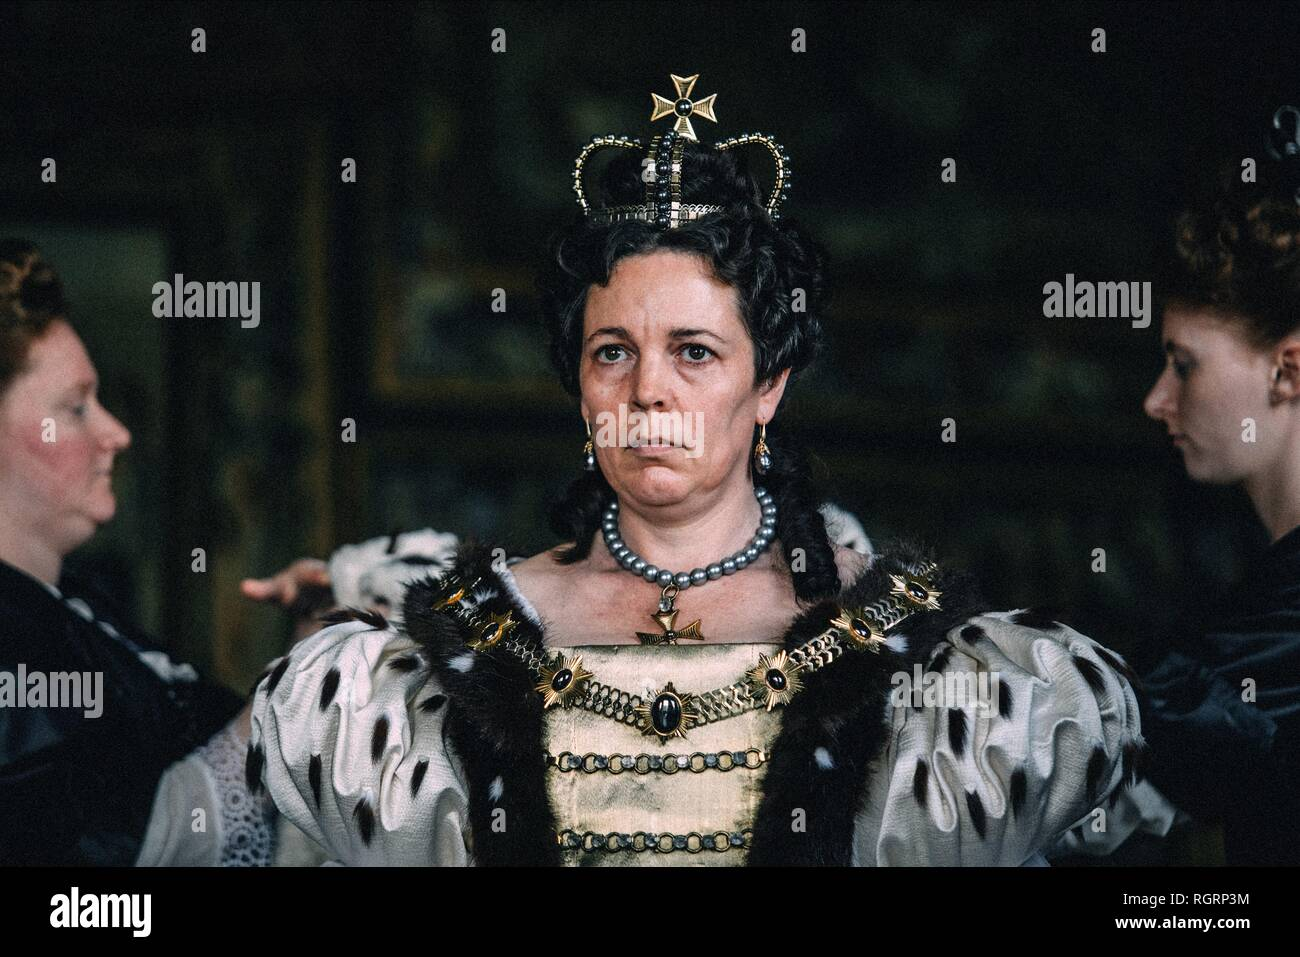 OLIVIA COLMAN THE FAVOURITE 2018 - Stock Image